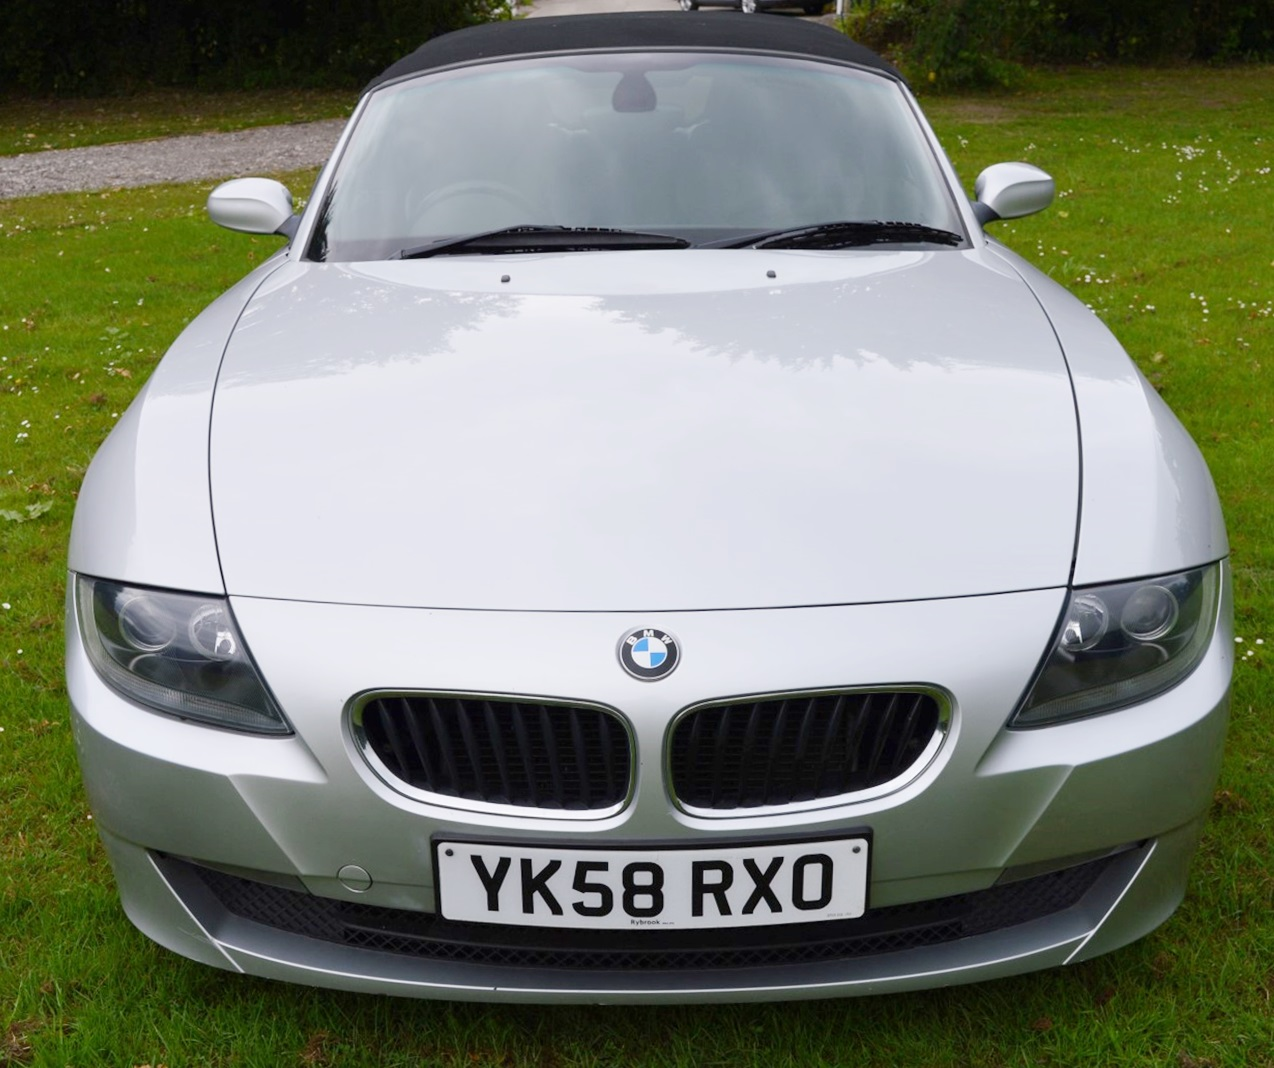 Bmw Z4 For Sale In Uk: 1 X BMW M Sport Convertible Z4 2.0i